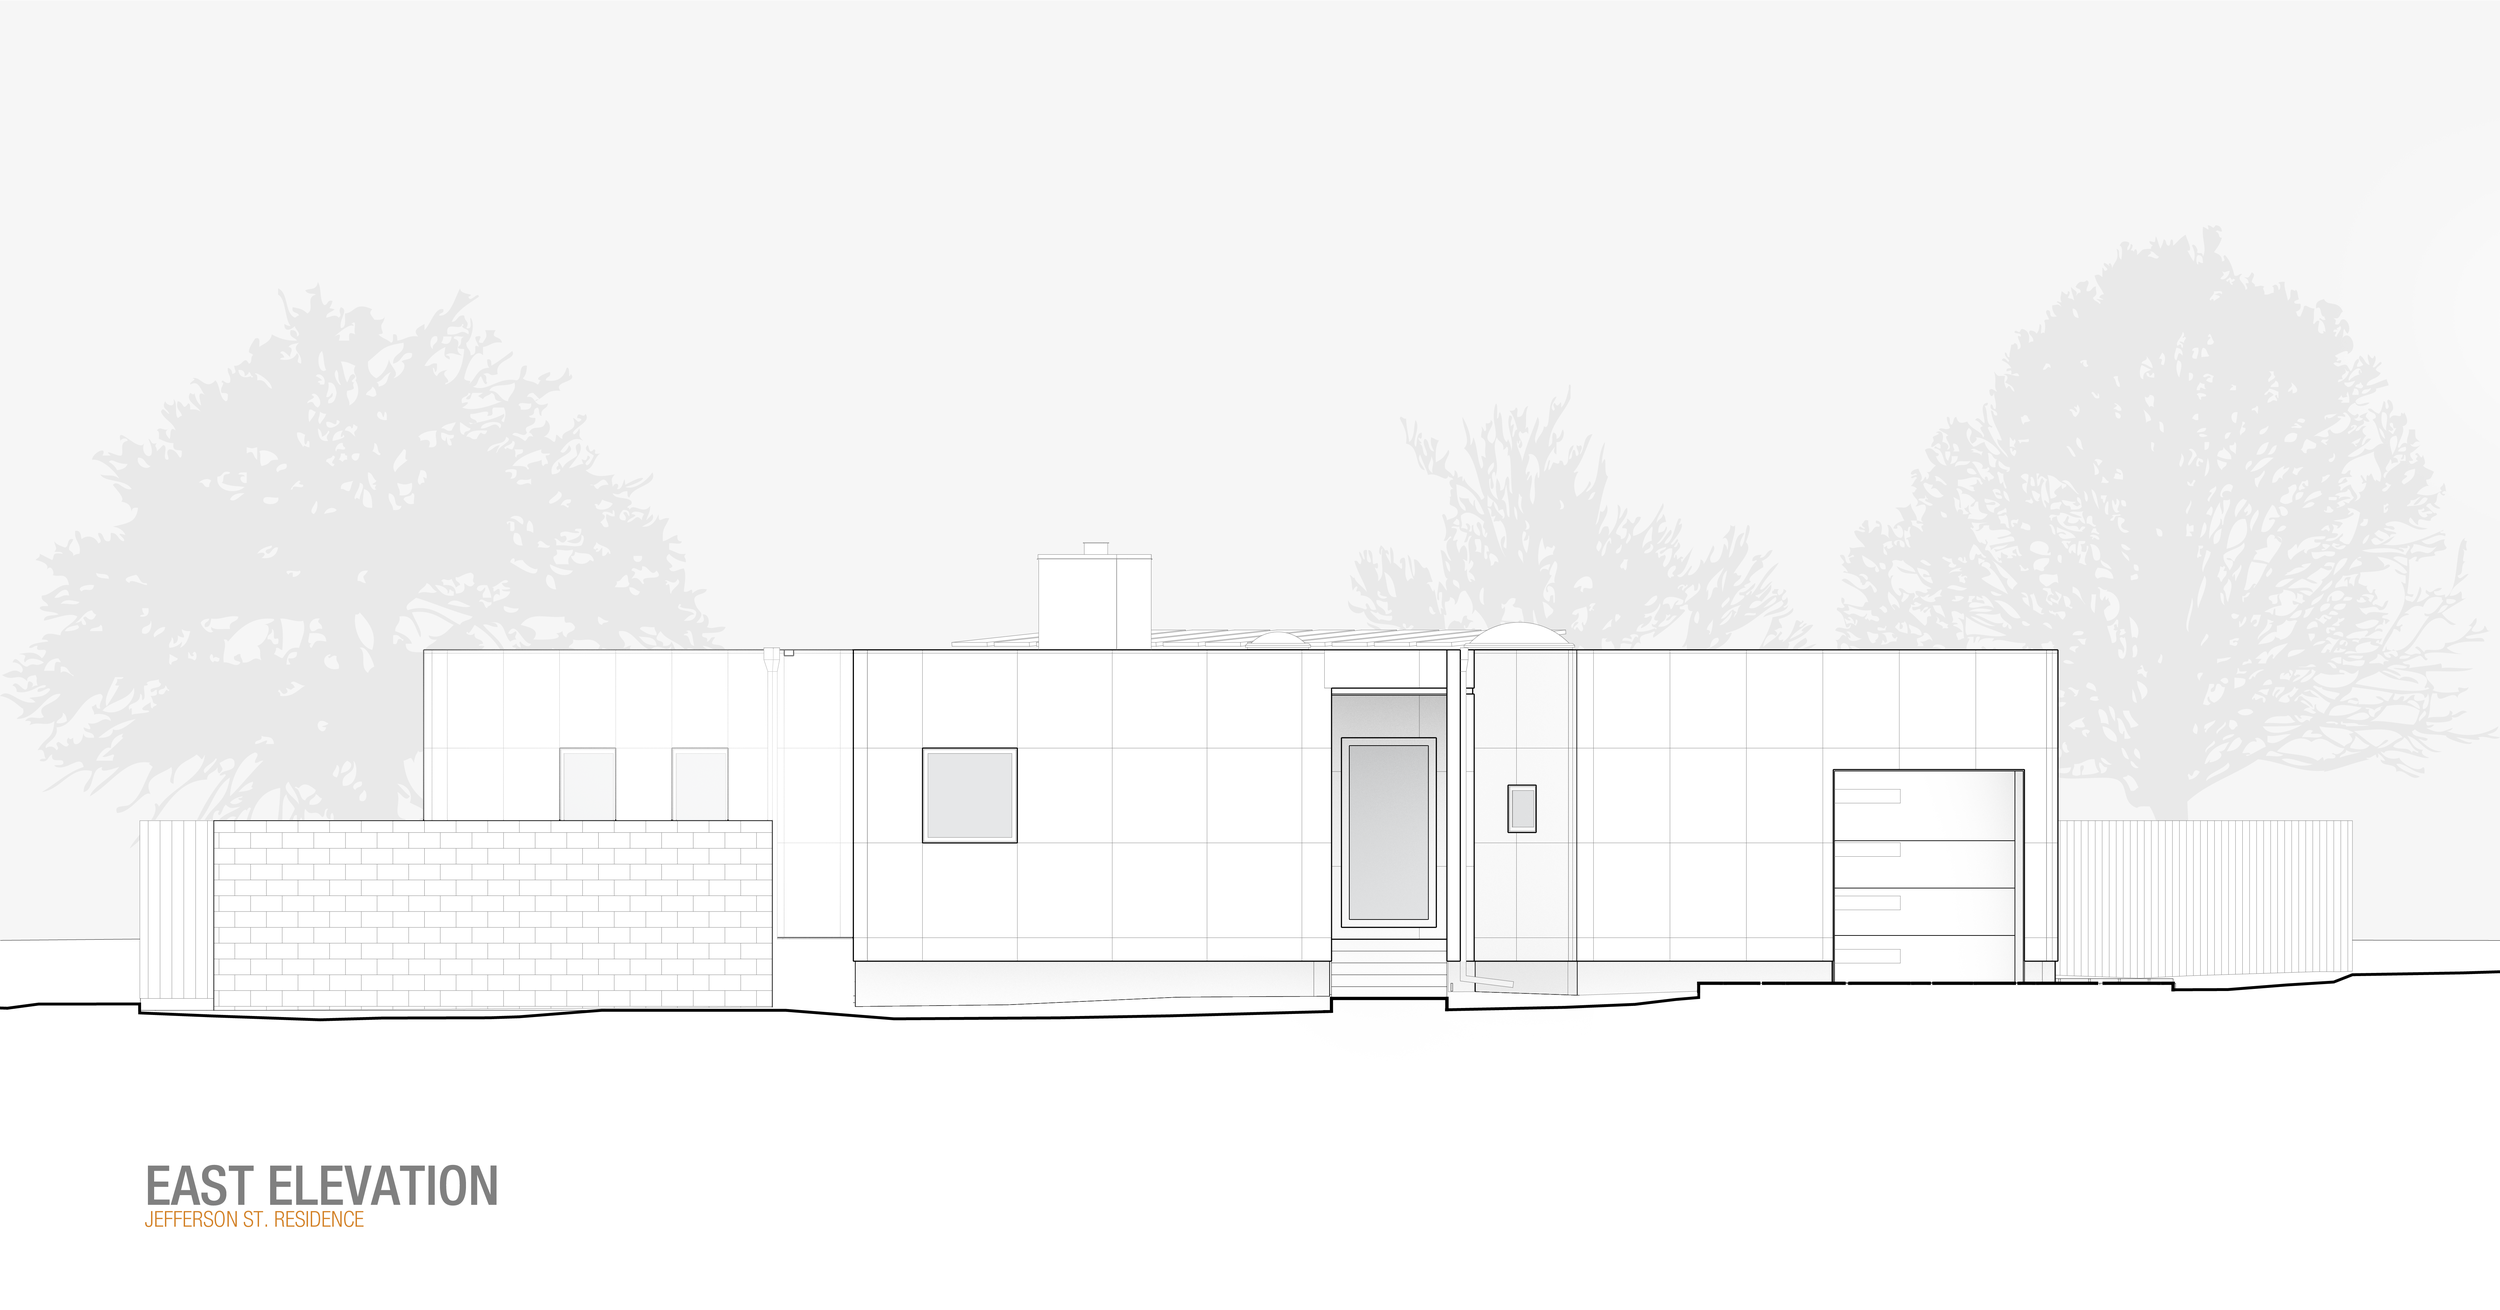 Jefferson St-Residence Presentation Elevation-01.png